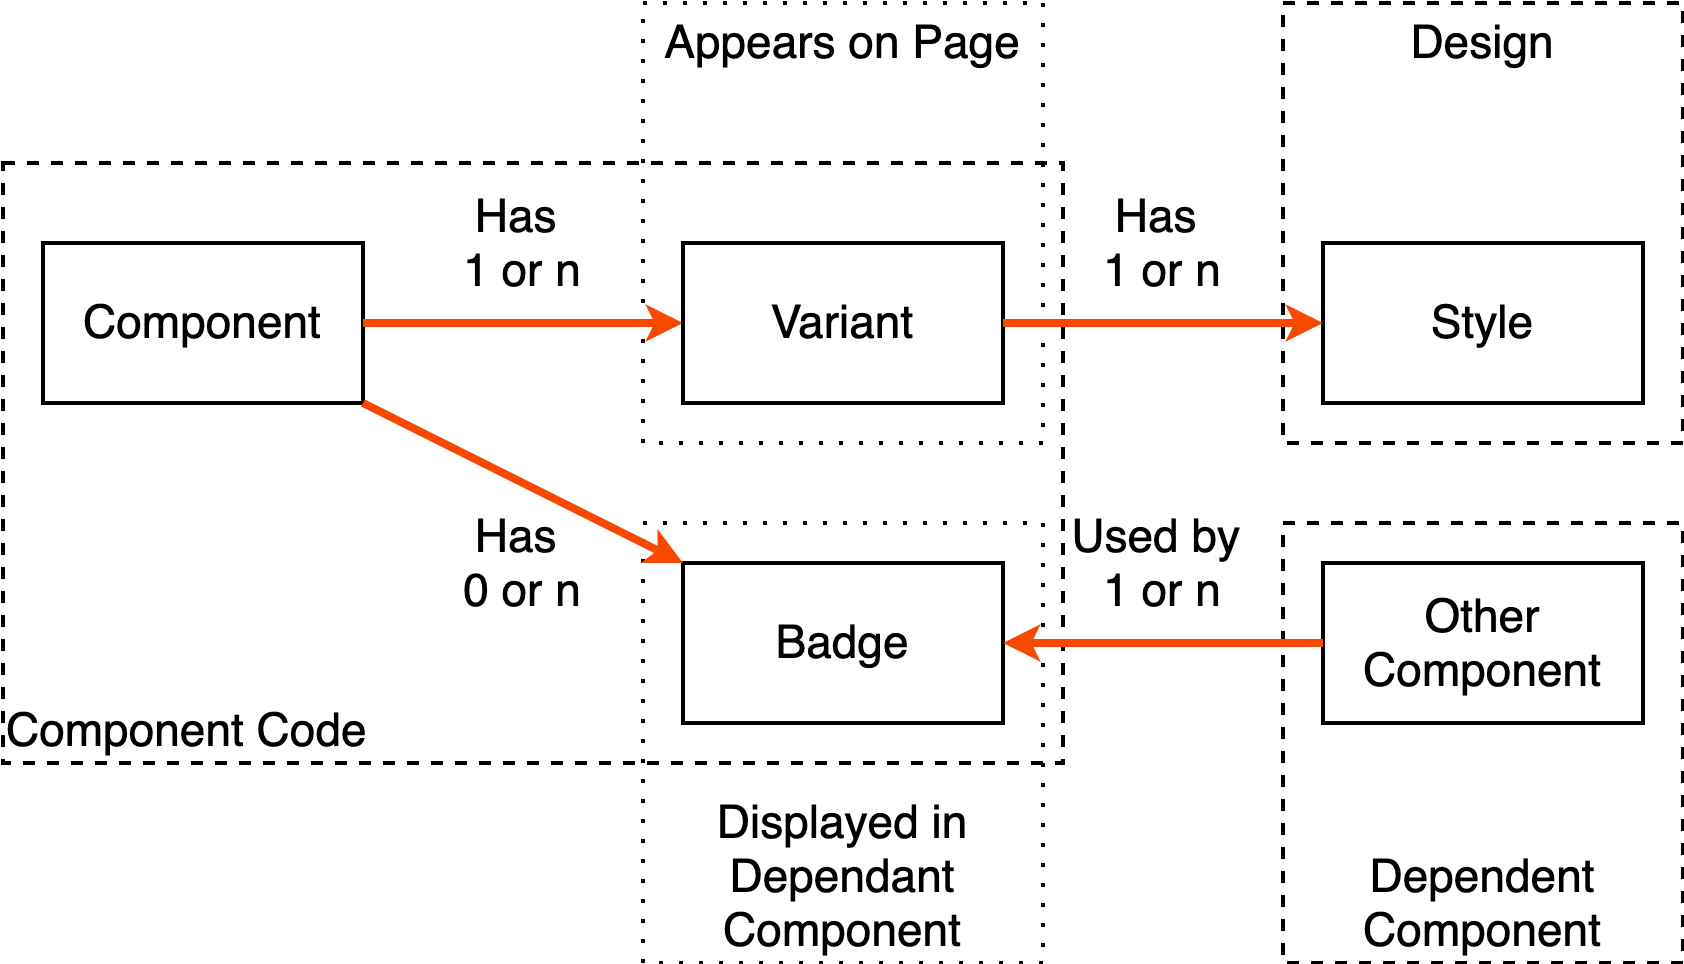 Component Variants Entity Diagram